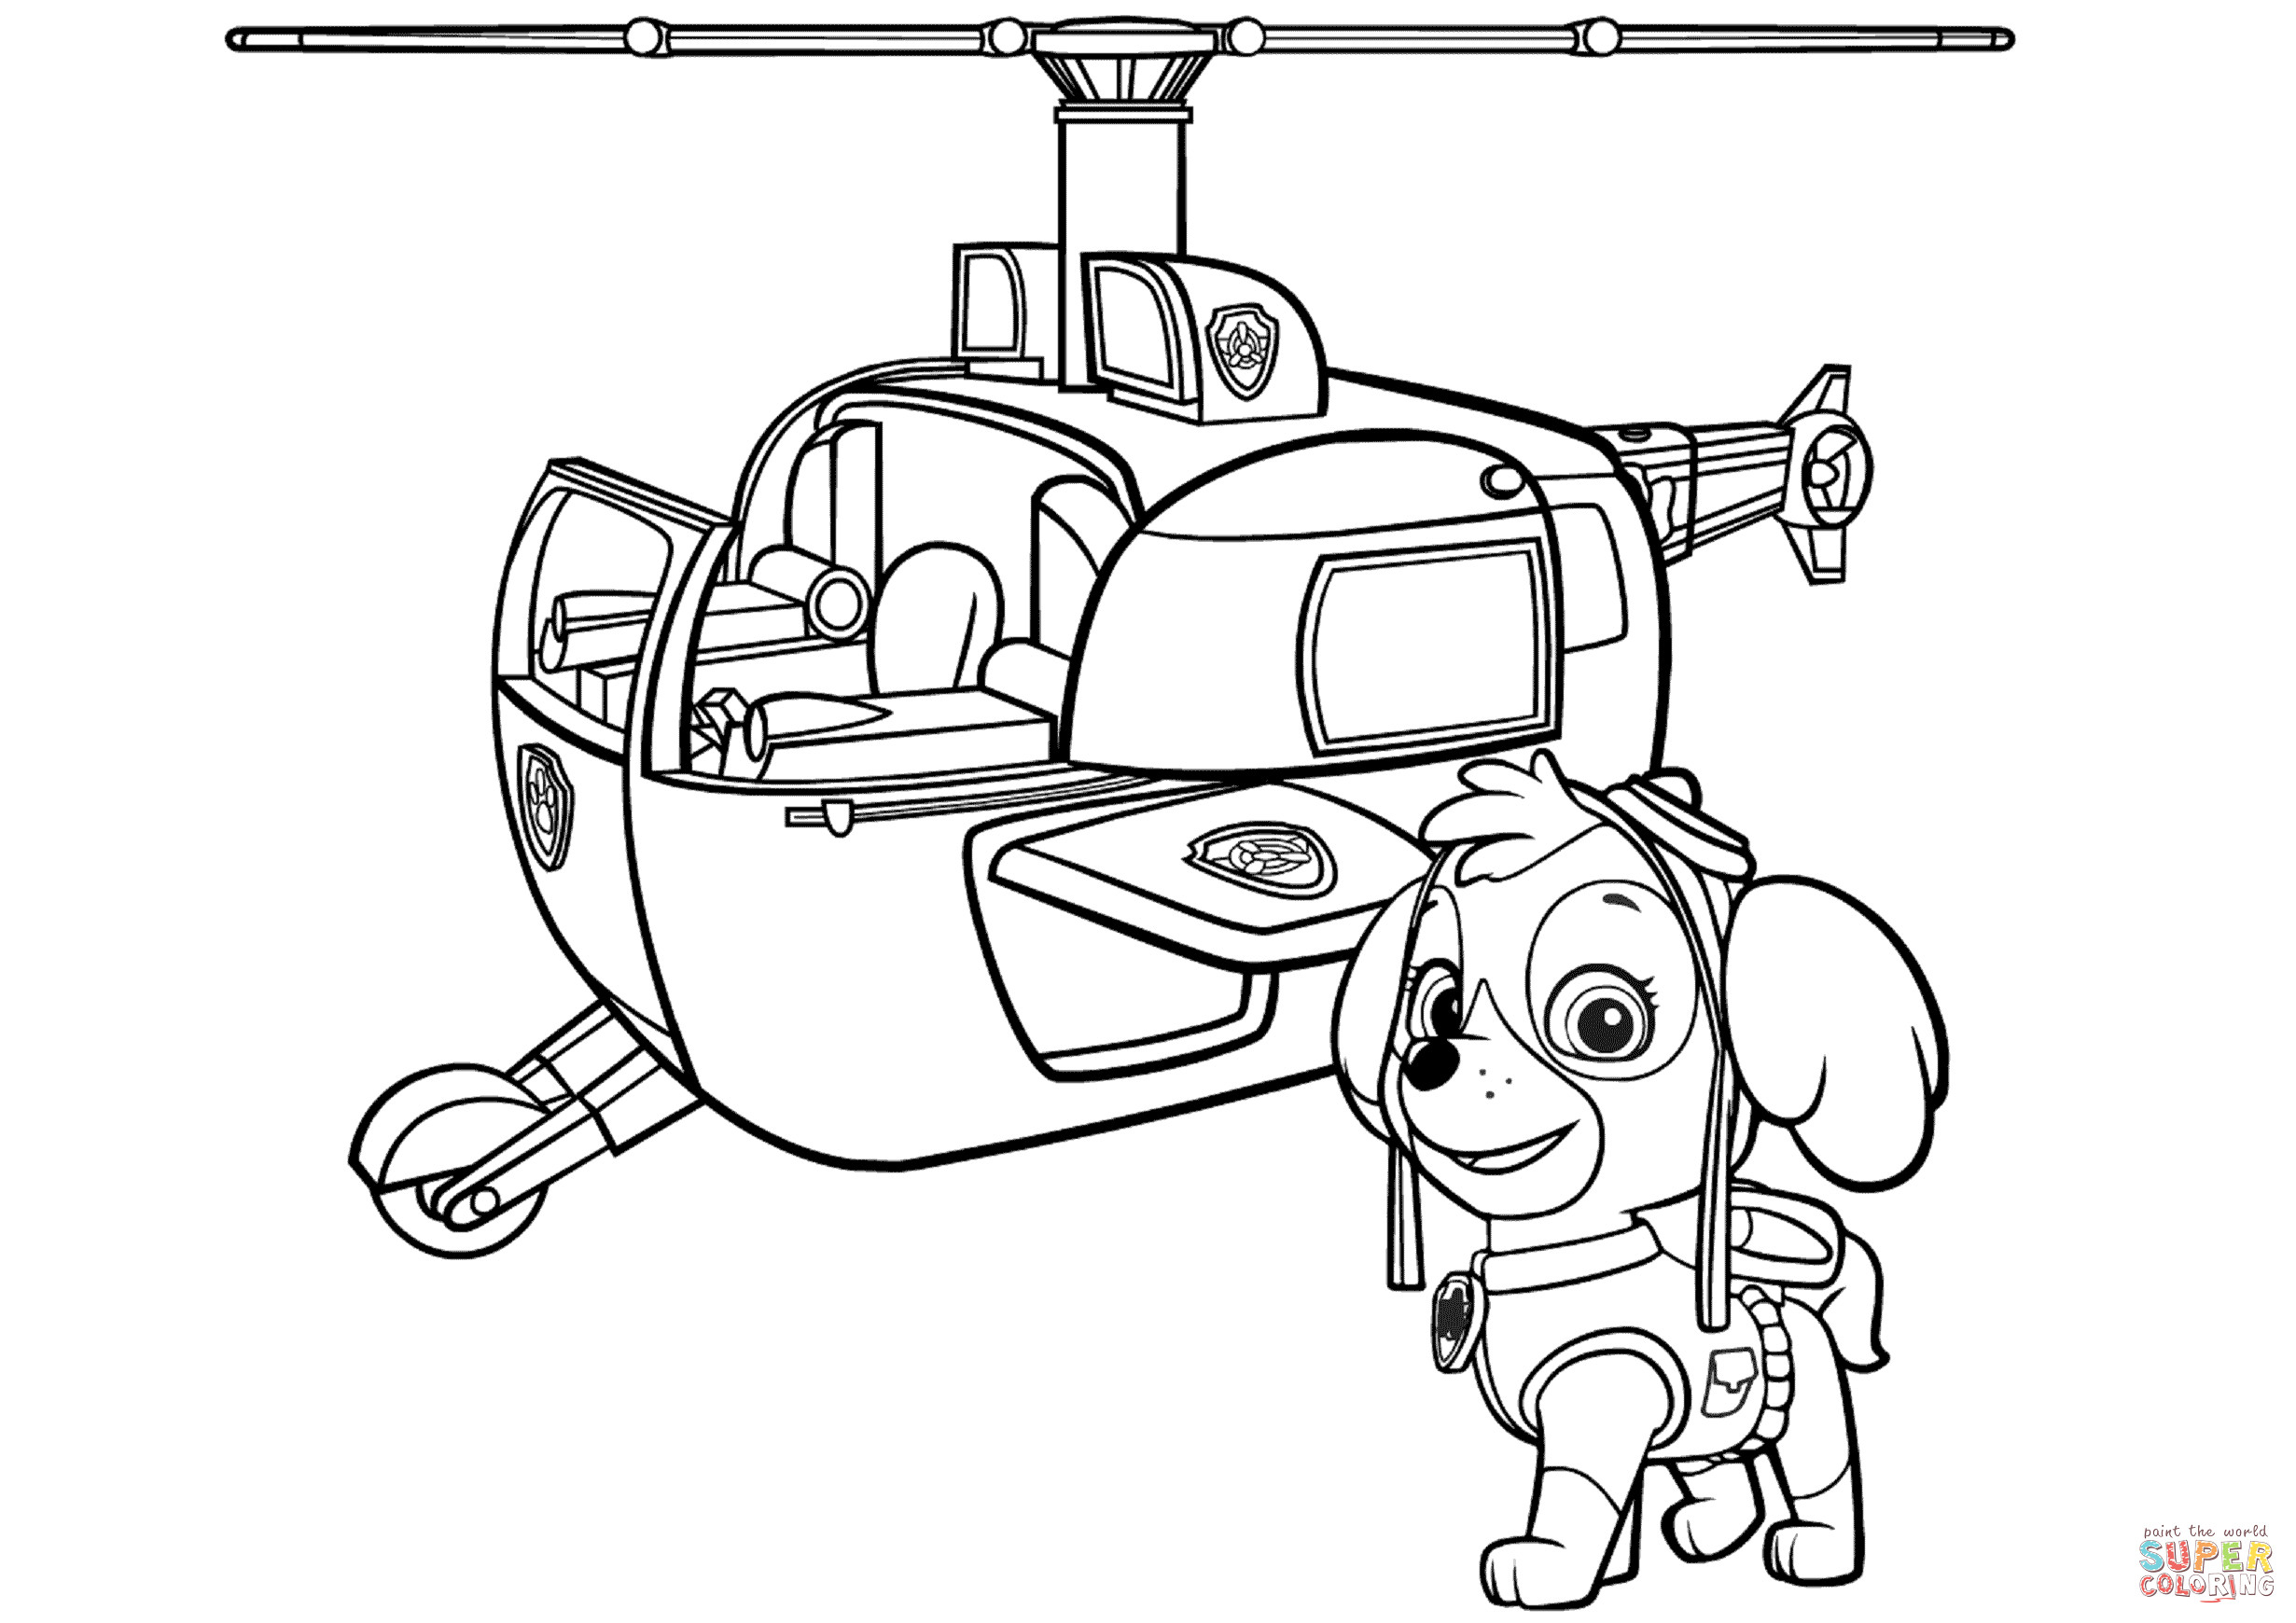 paw patrol lookout coloring page pin on paw coloring page patrol page lookout coloring paw